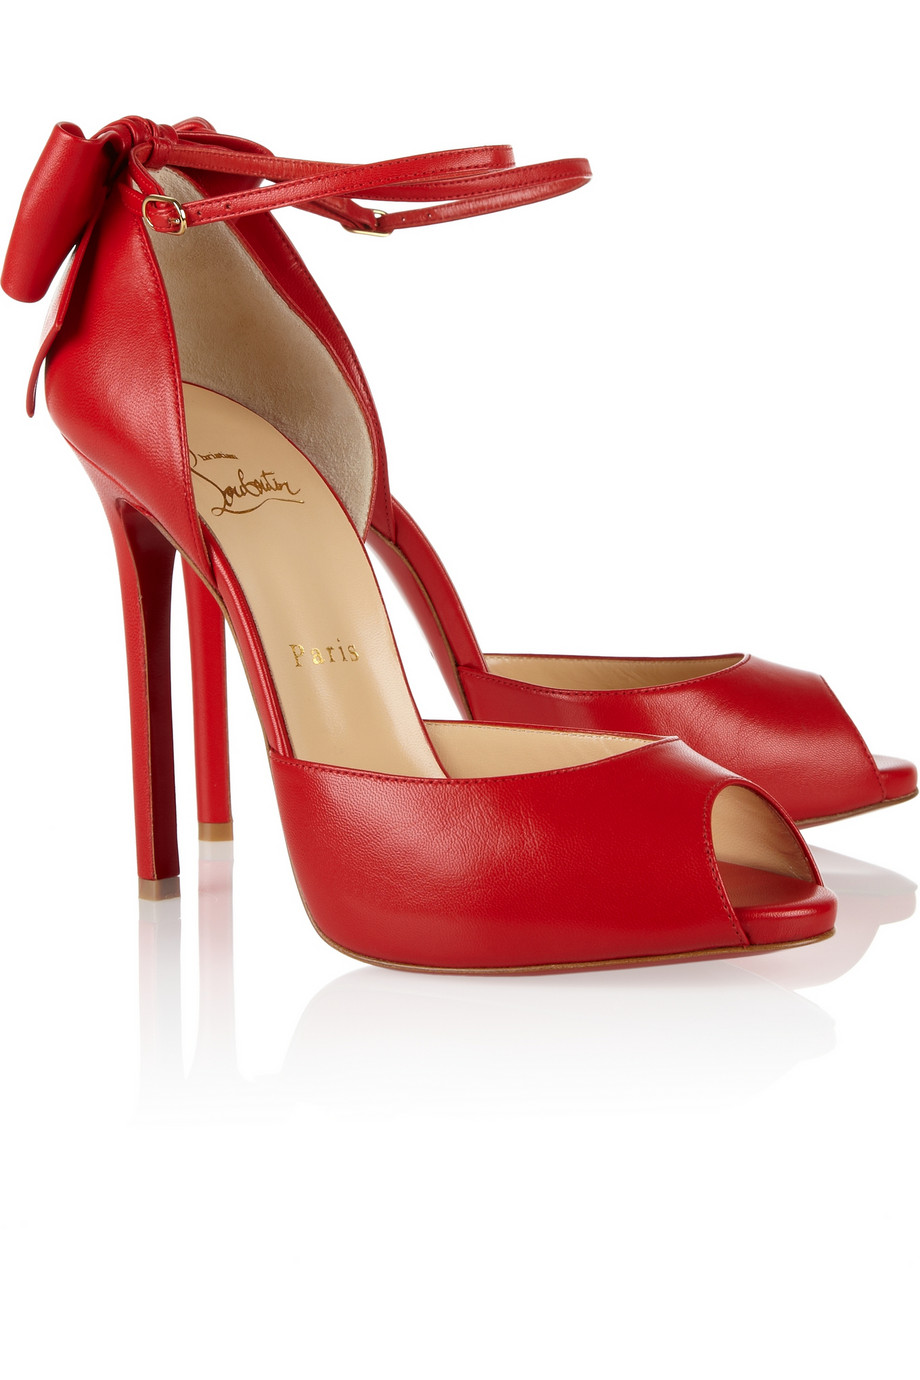 Red Heels With Bow On Back - Is Heel